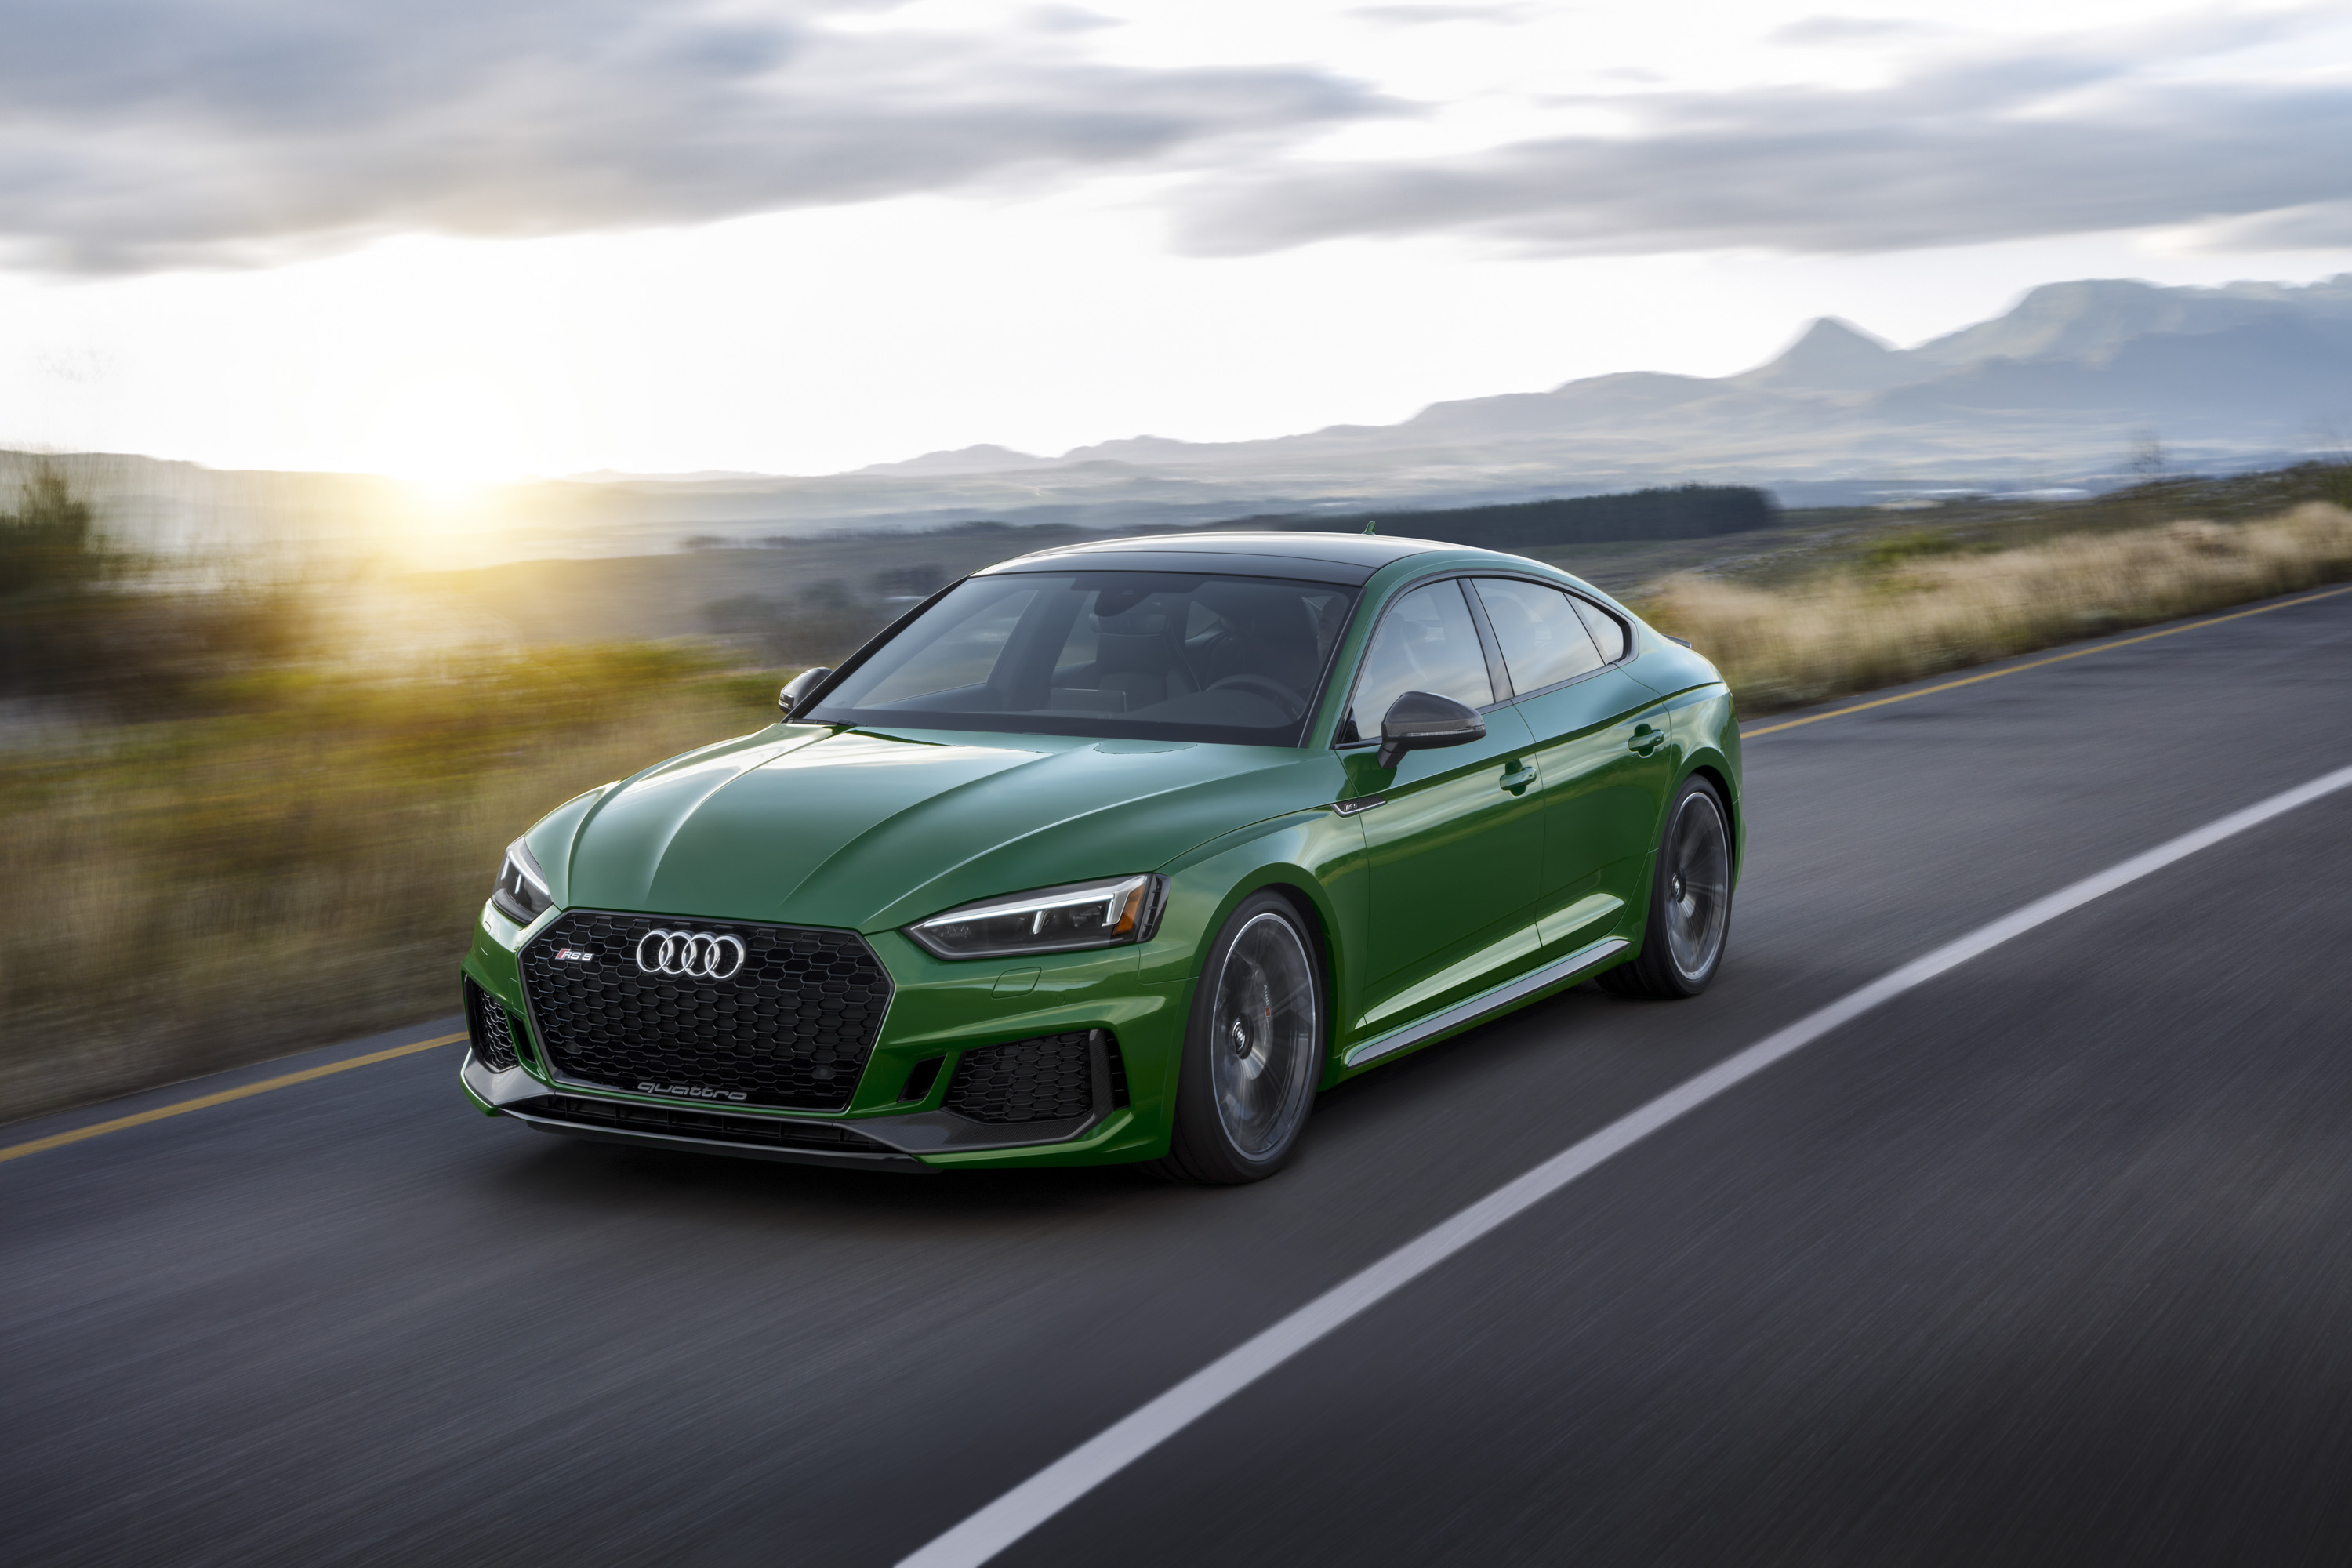 Audi 0 60 >> Audi Claims The New Rs5 Can Do 0 To 60 Mph In Four Seconds But What